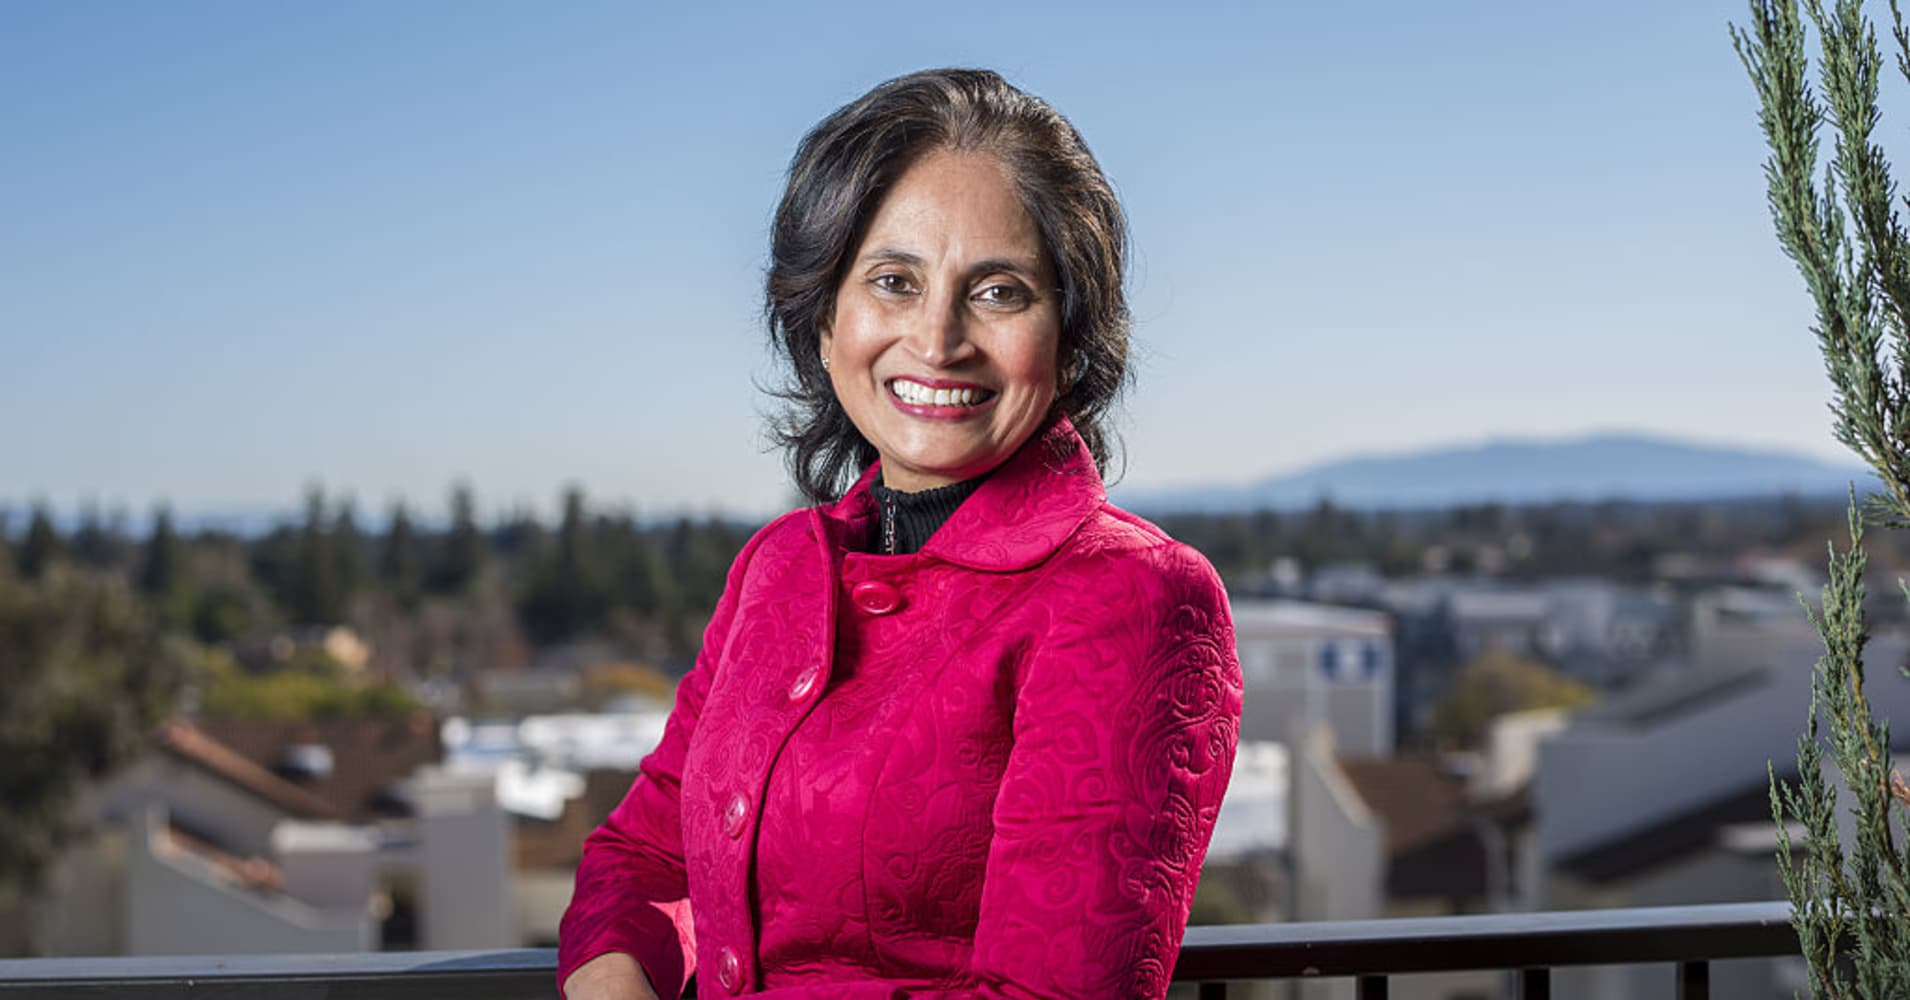 Top Silicon Valley CEO Padmasree Warrior: These are the 3 traits you need to make it in tech